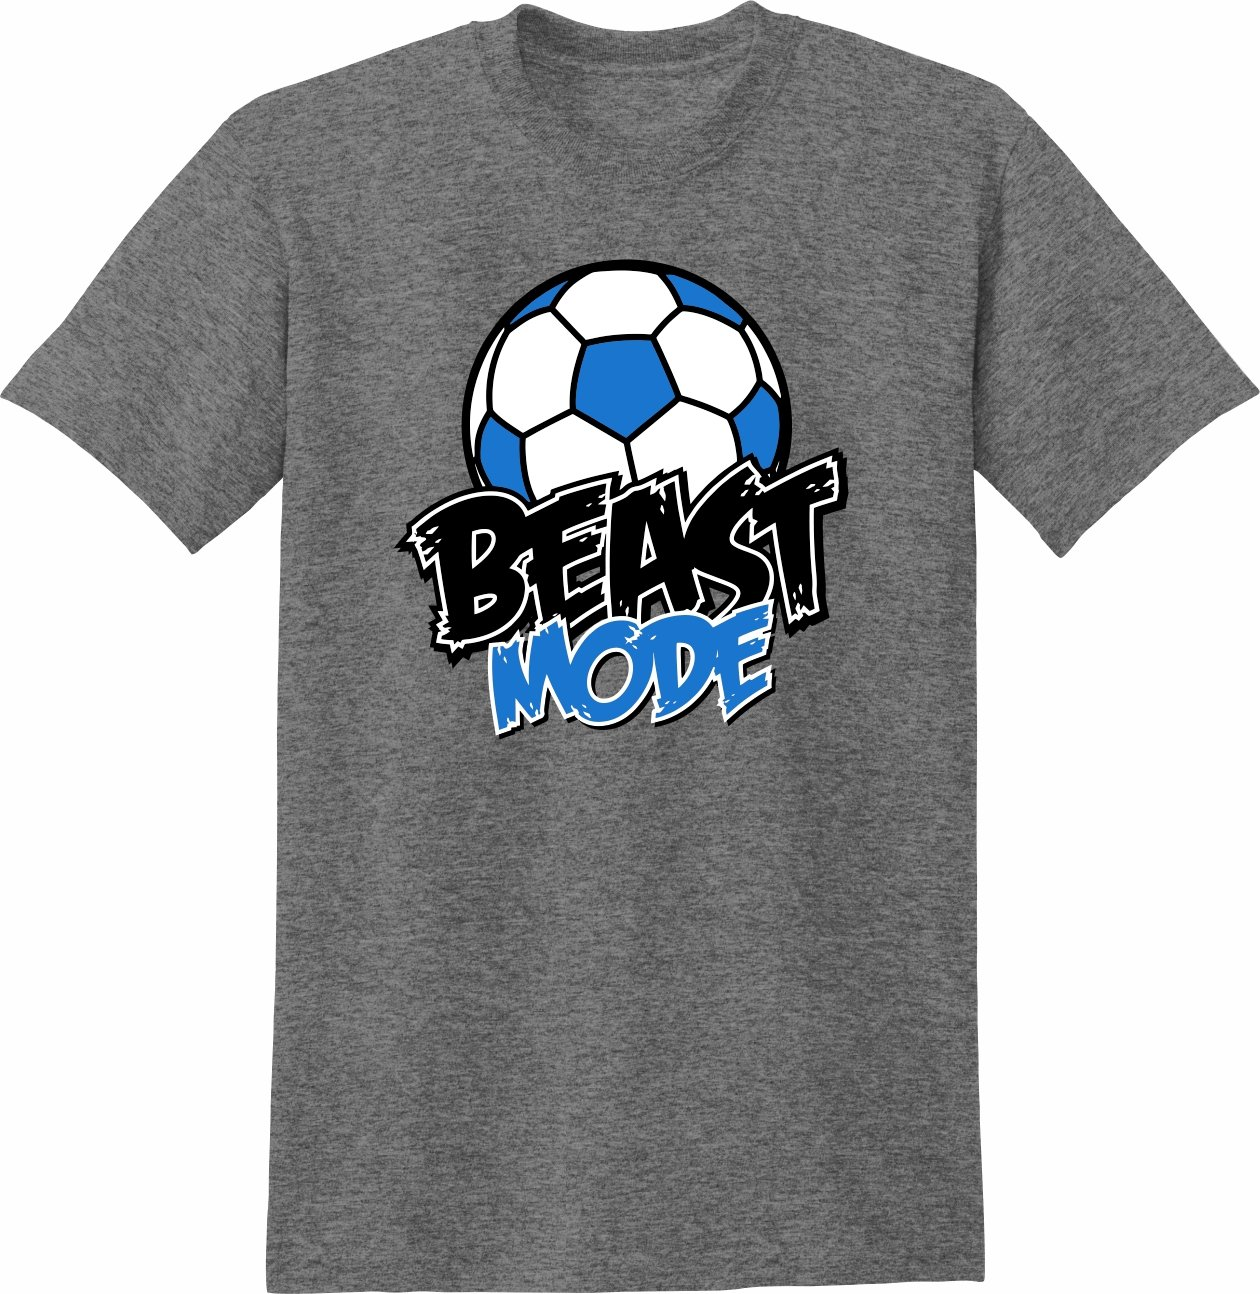 Soccer Tシャツ: Beast Mode Soccer B01MZG3DSAグレーヘザー(graphite heather) Youth Large